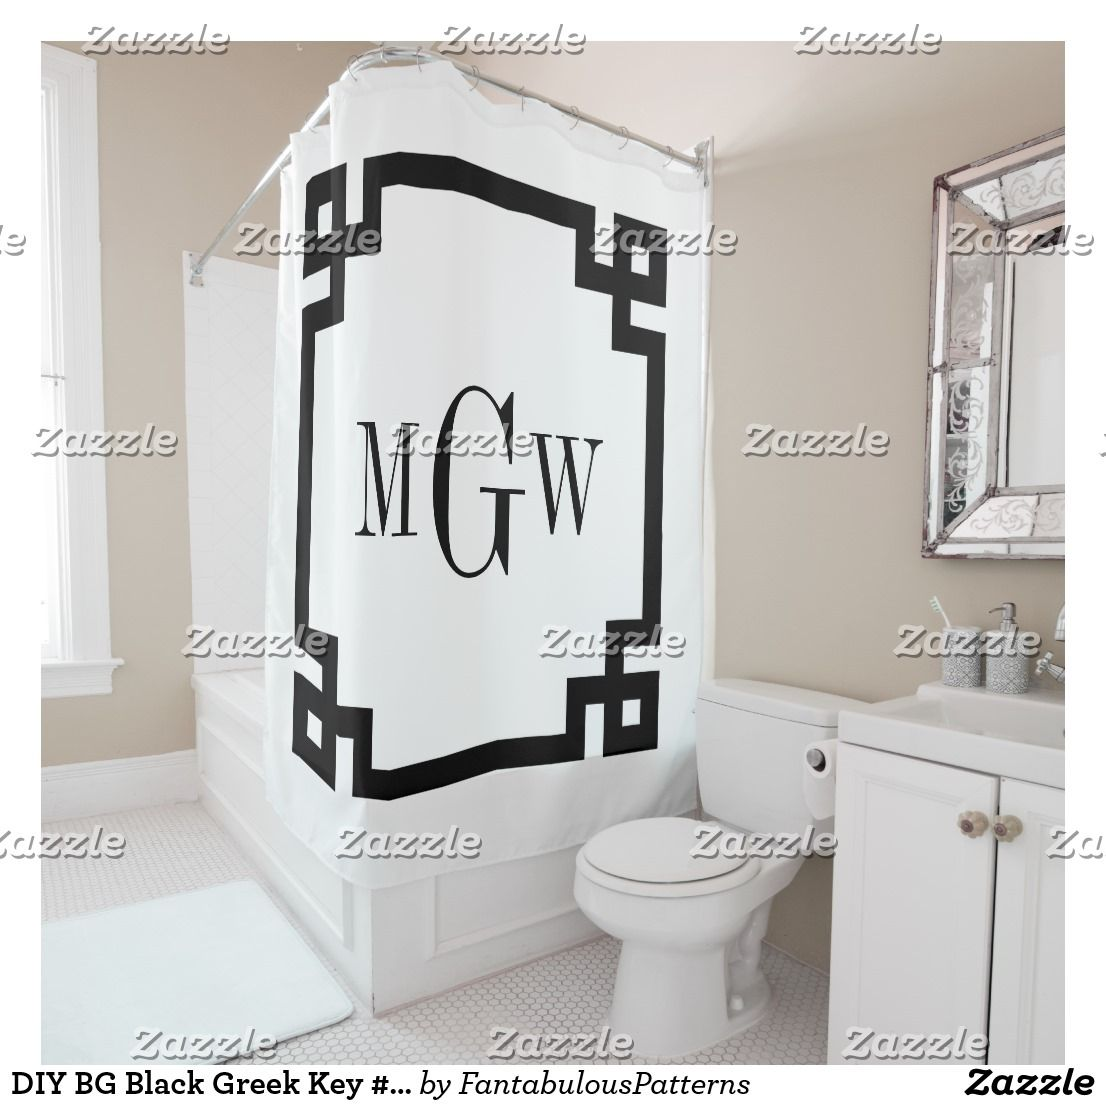 DIY BG Black Greek Key 2 Framed 3I Monogm Shower Curtain